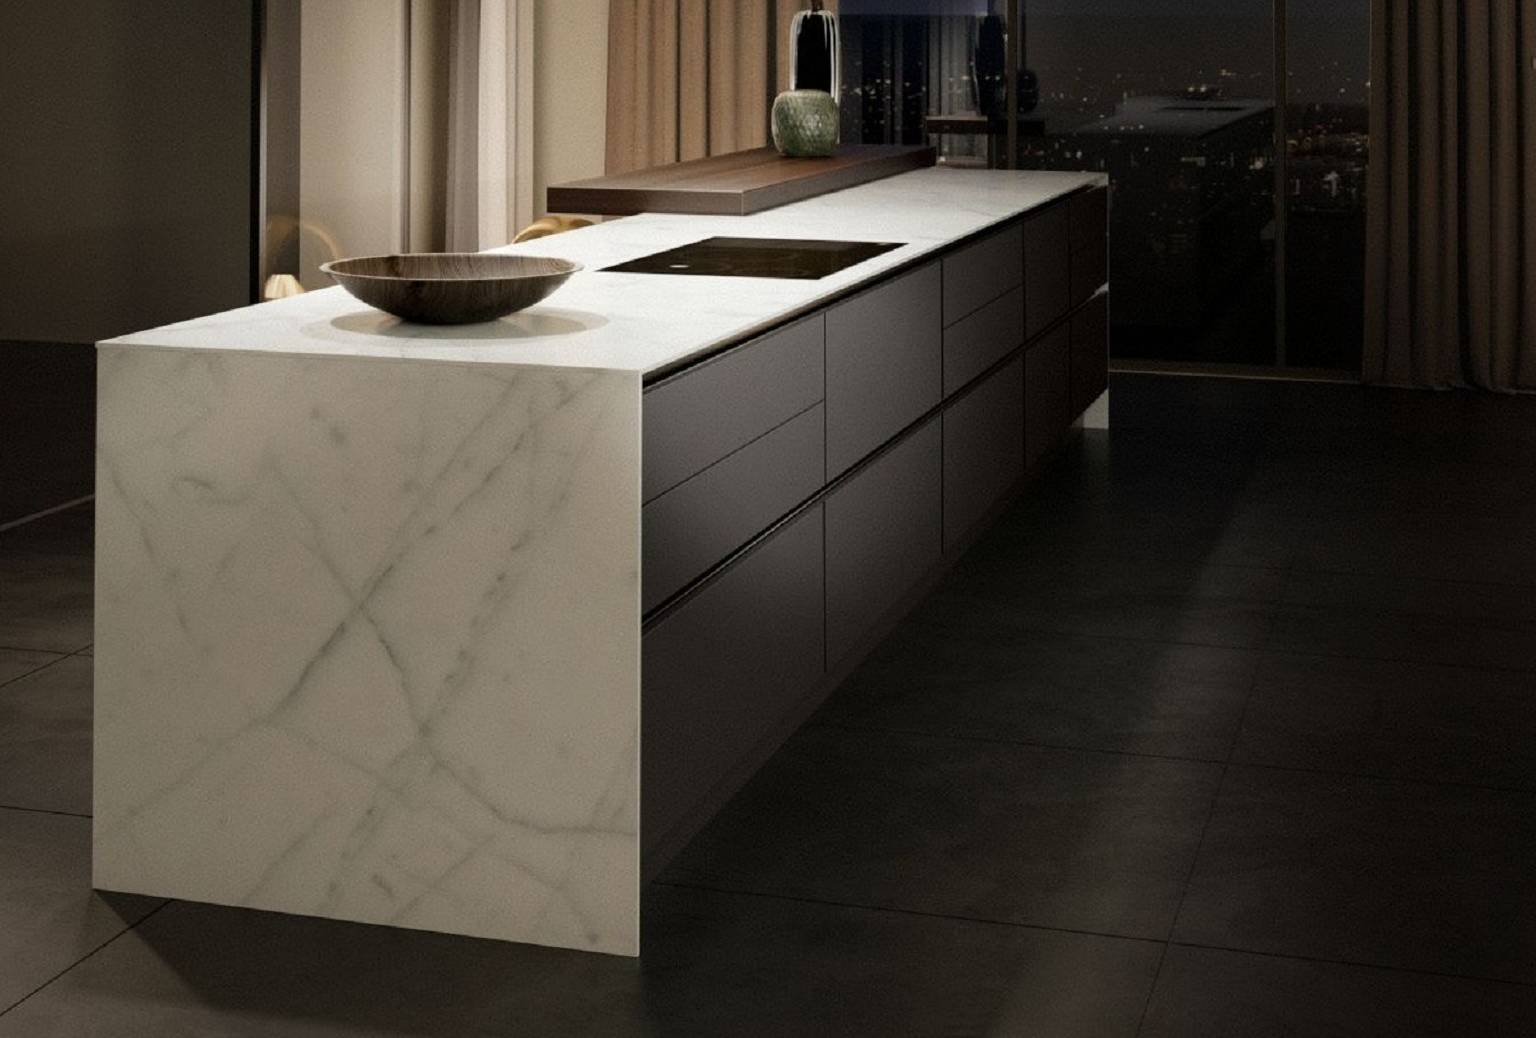 Minimalist kitchen design with handleless island, with SieMatic StoneDesign countertop and side panels in bright marble